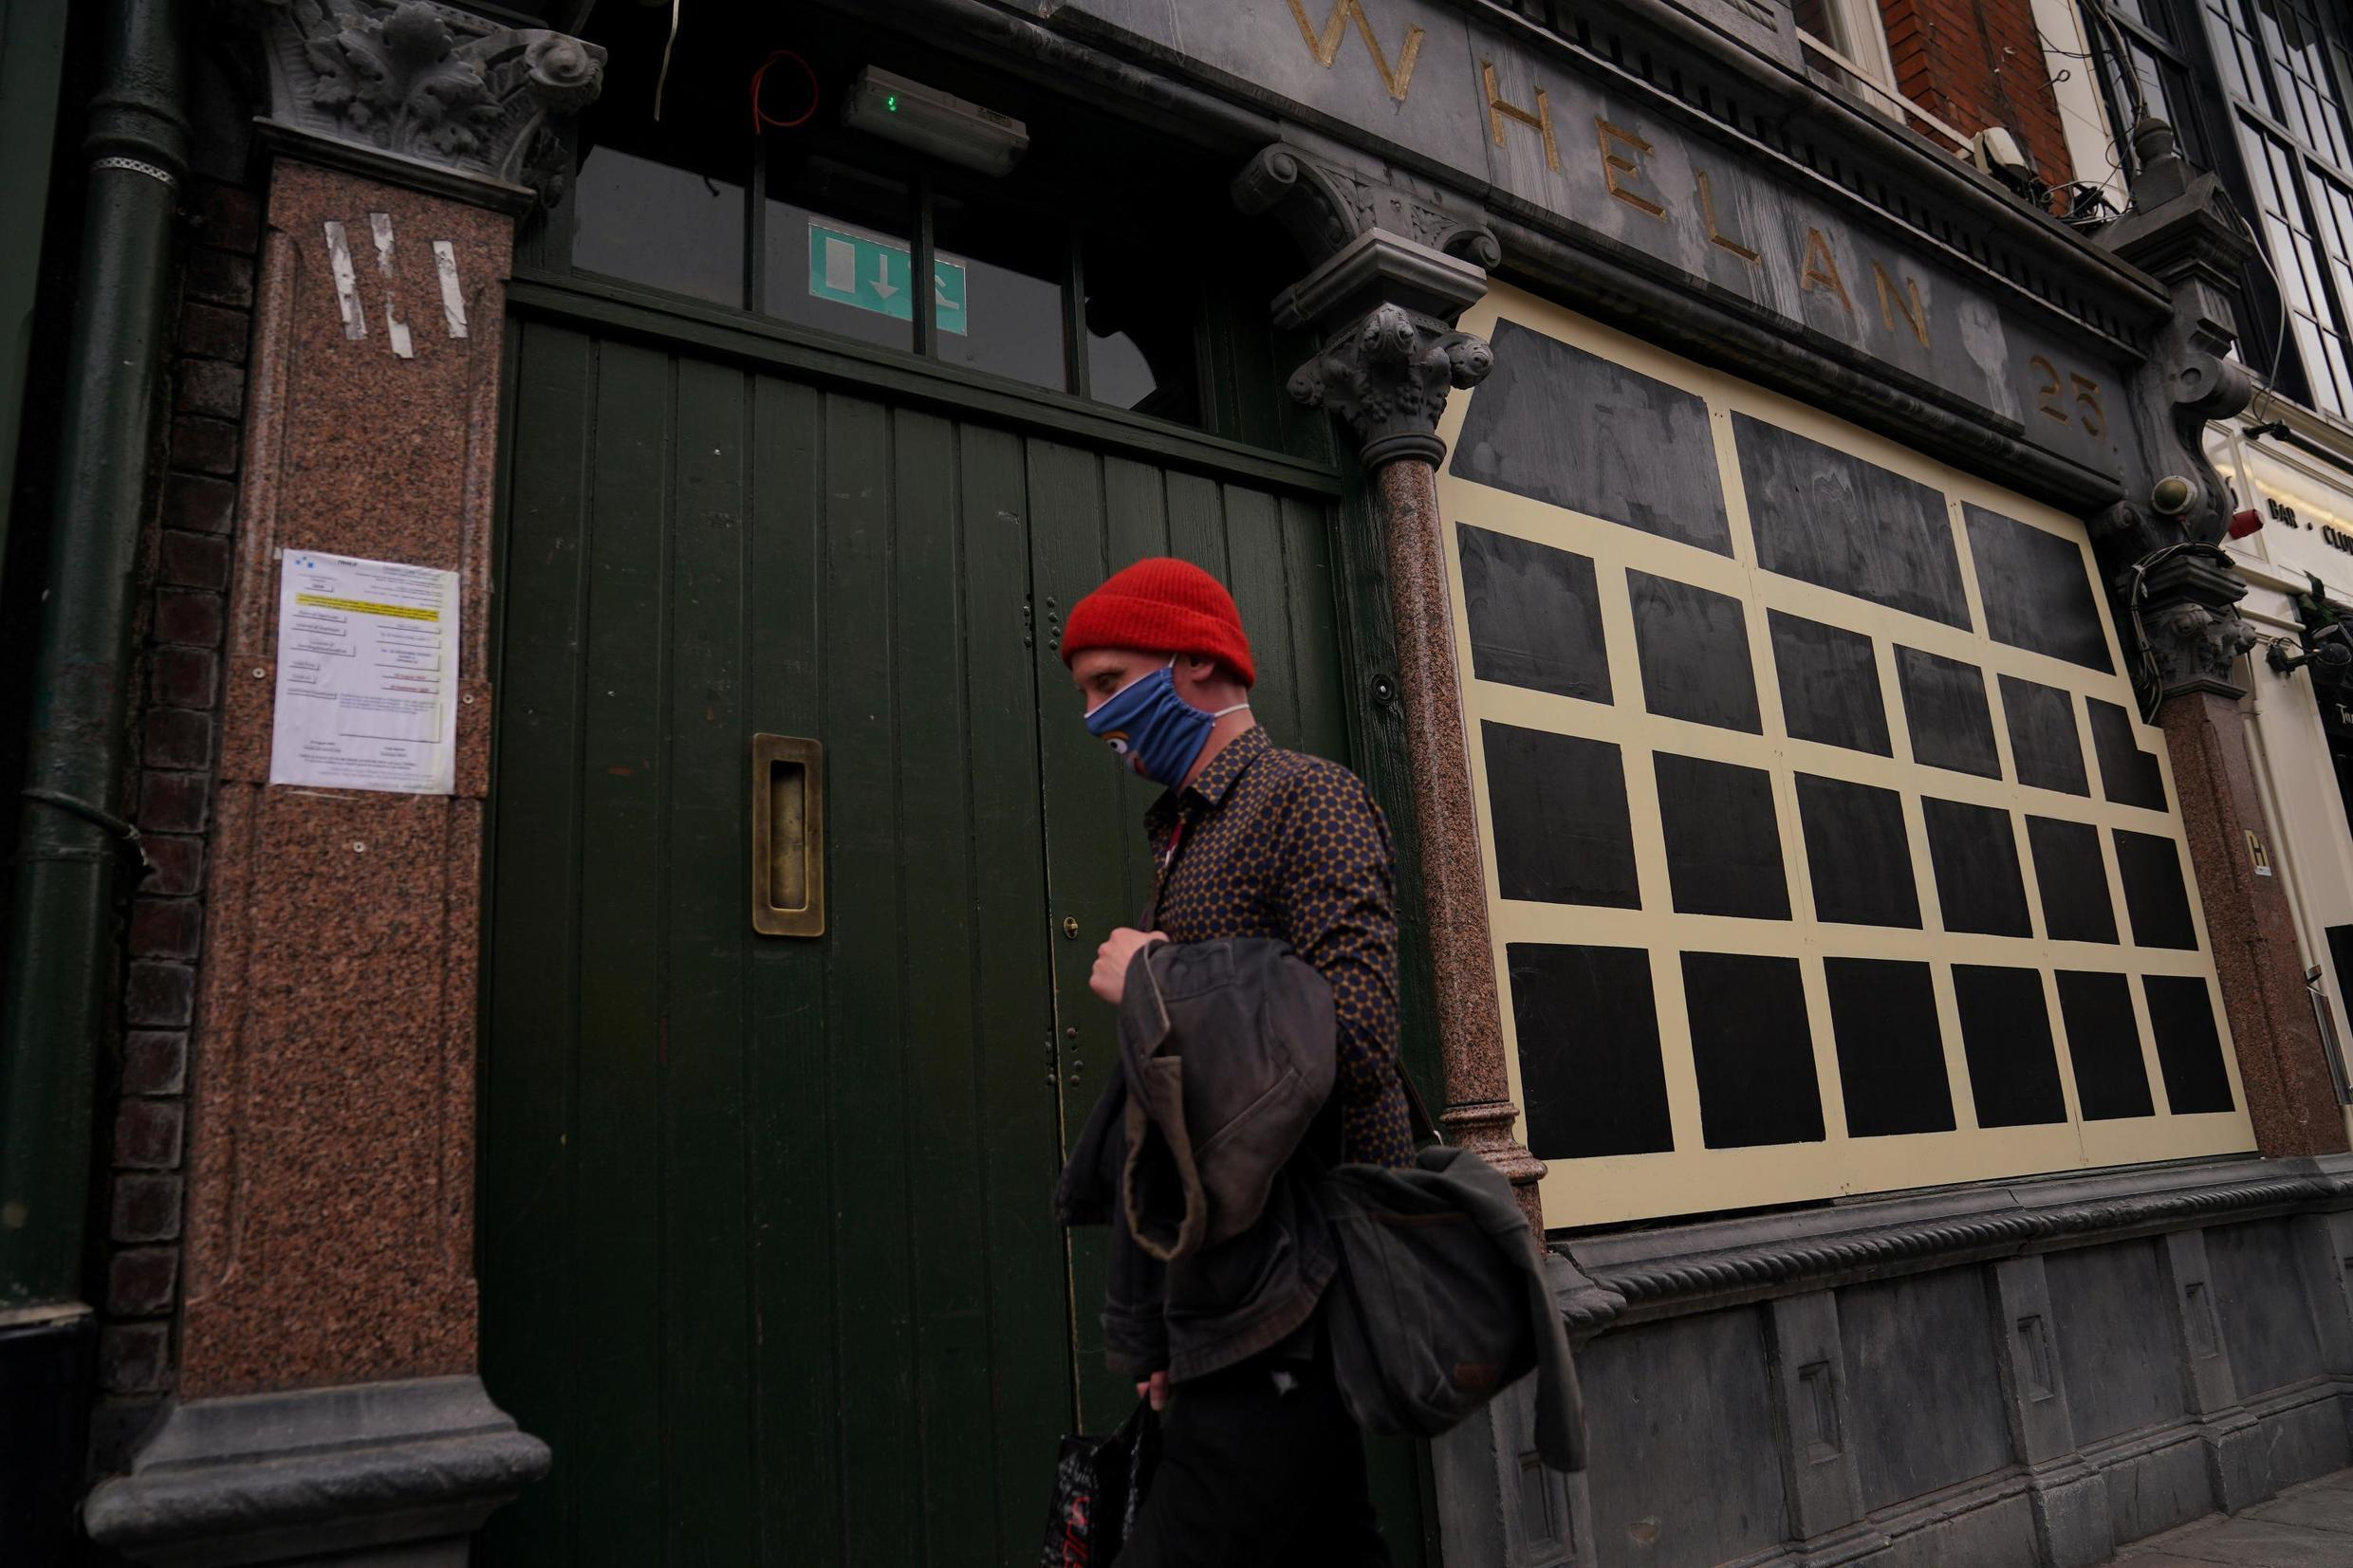 A person wearing a mask walks past a closed pub in downtown Dublin, 3 September 2020.